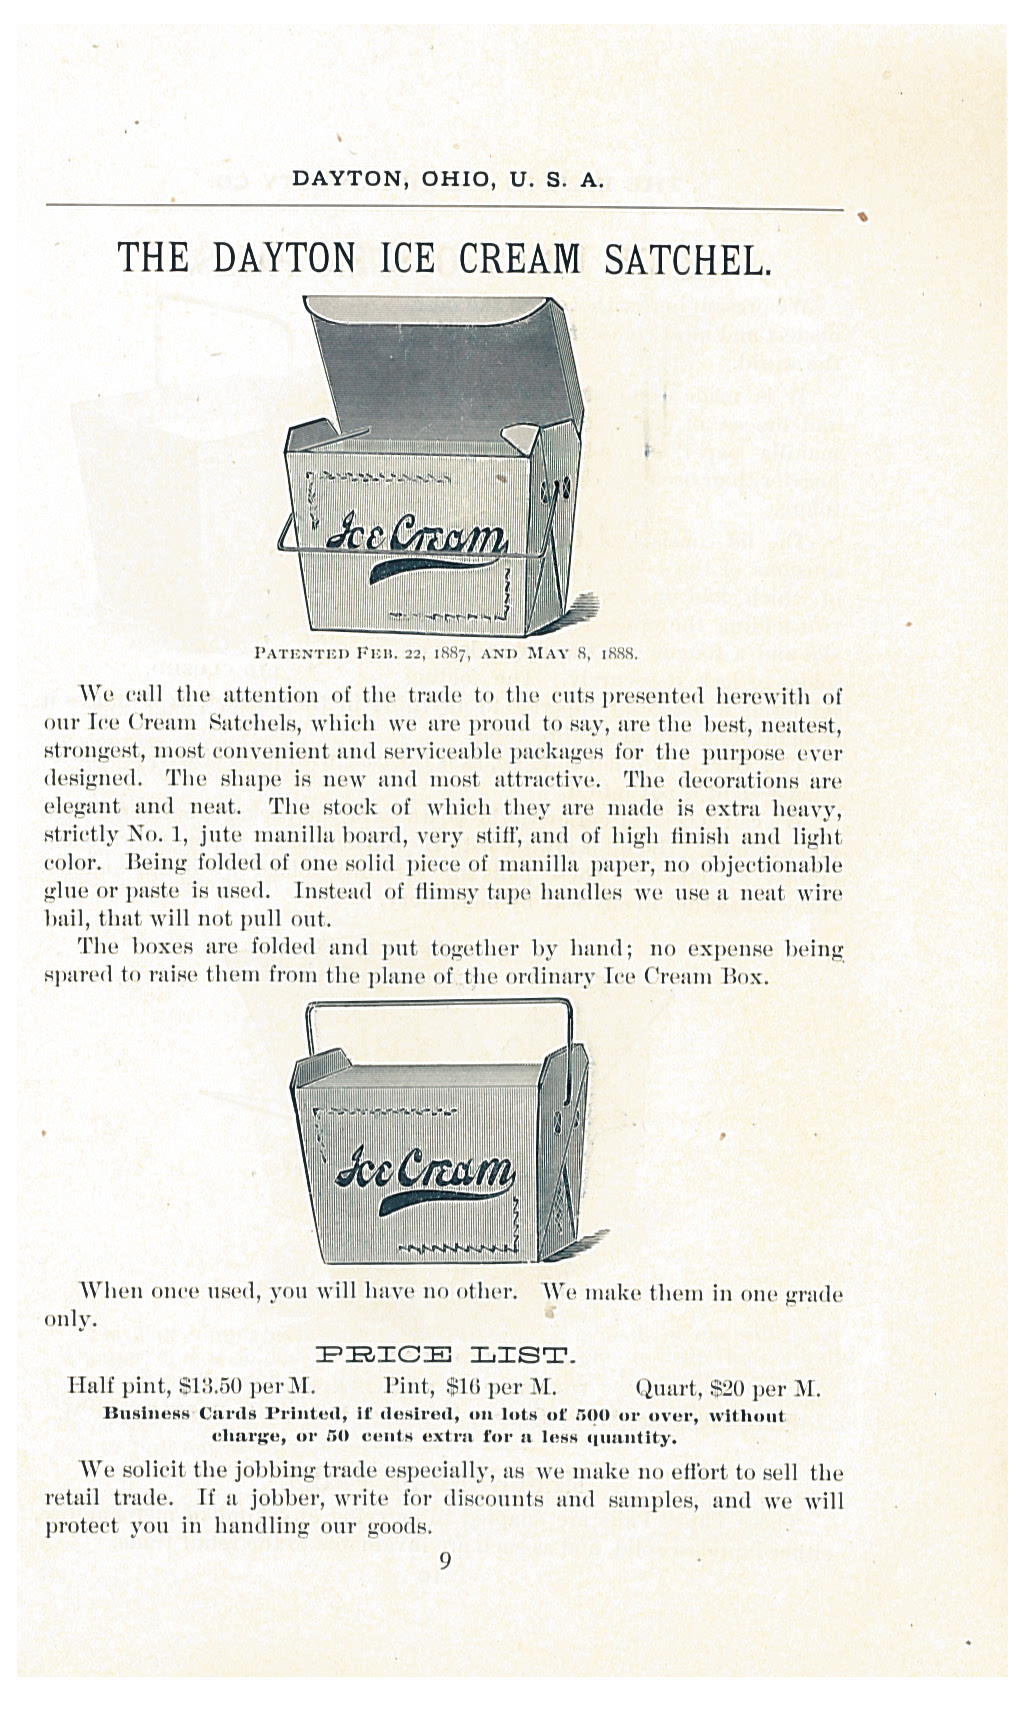 Hand folded ice cream boxes smithsonian libraries unbound dayton ice cream satchels shown in 1888 1889 catalogue and price list of the dayton reheart Gallery